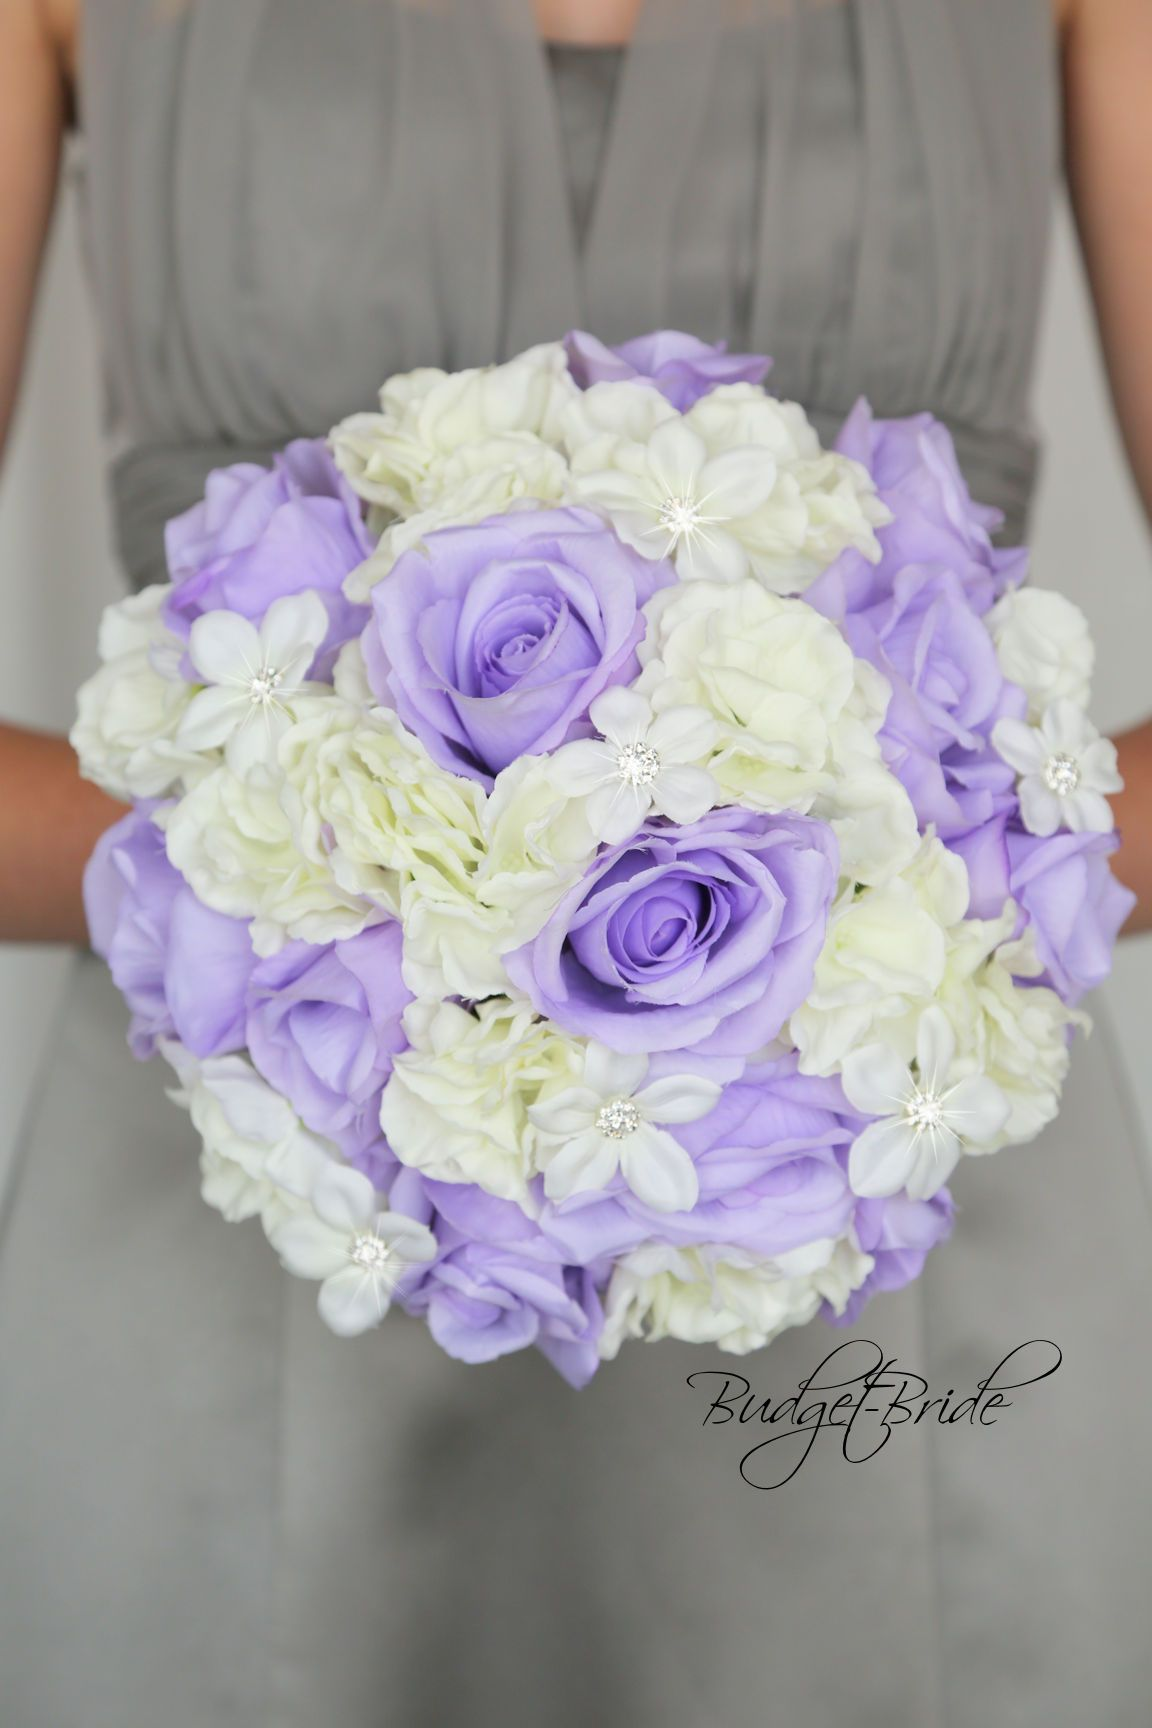 Mercury David Bridal Wedding Bouquet With Lavender And White Flowers